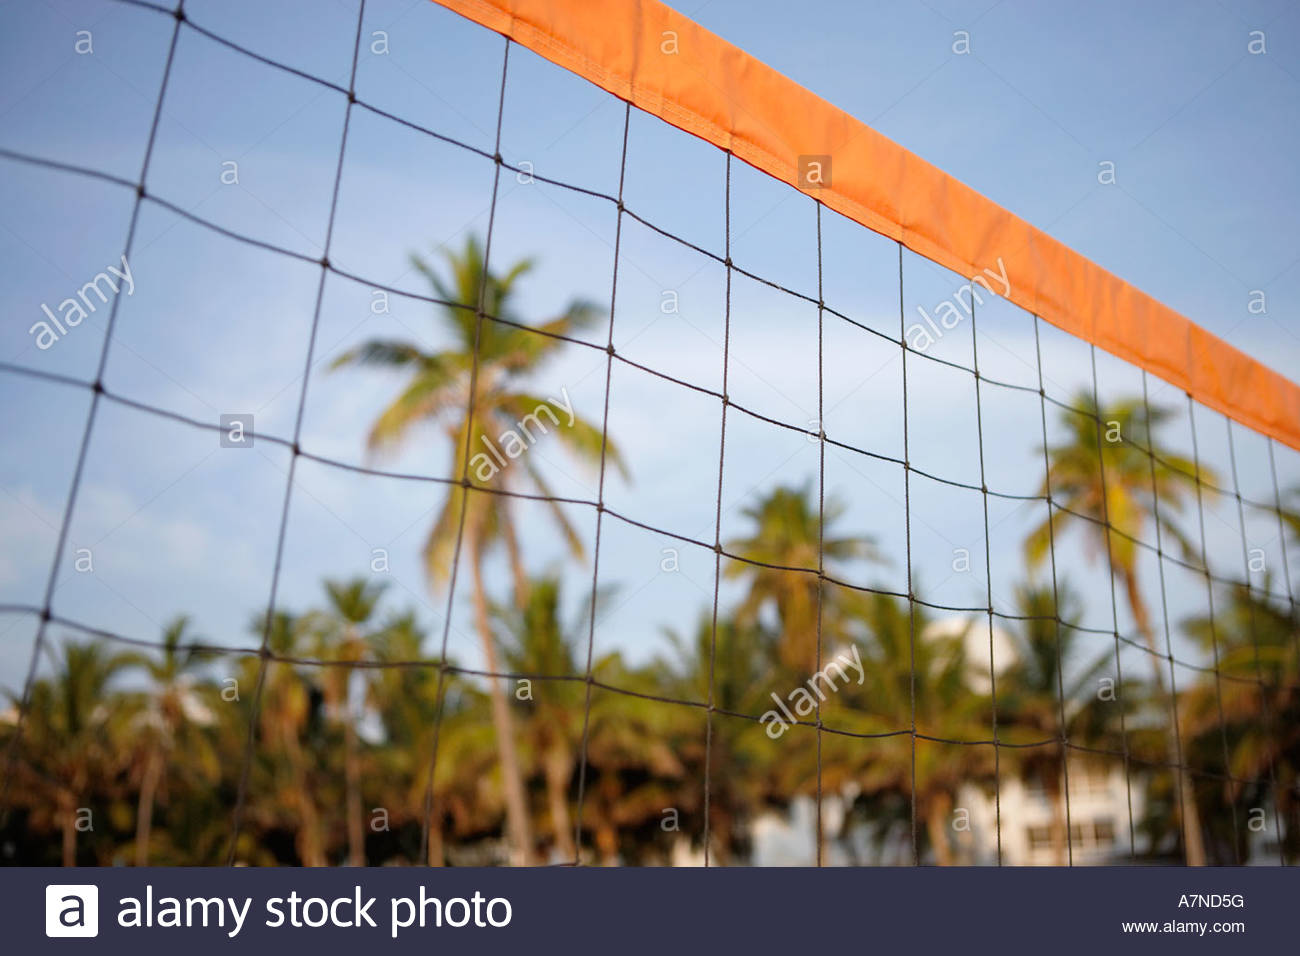 Close up of beach volleyball net palm trees in background focus on foreground low angle view - Stock Image